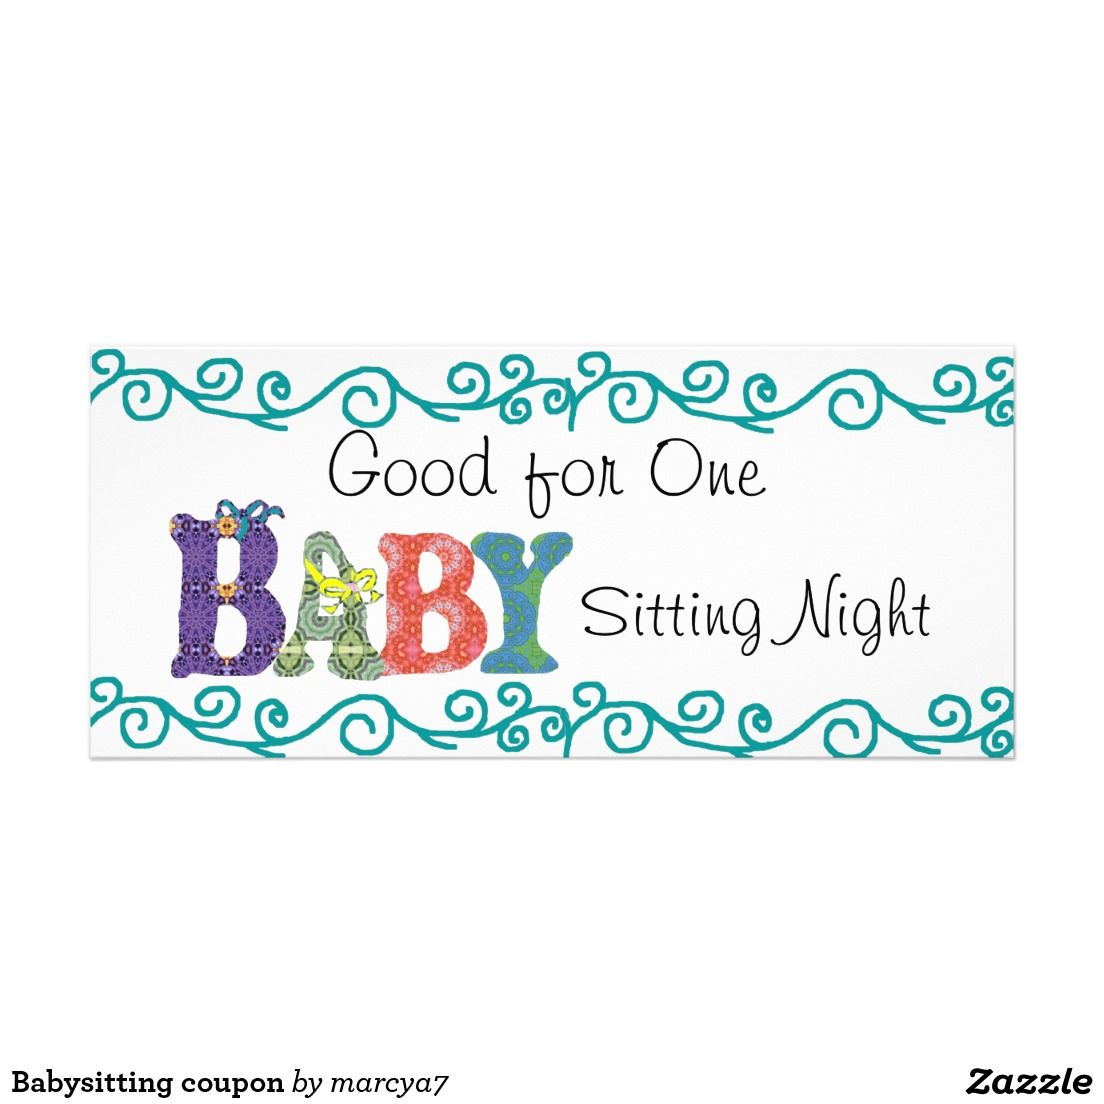 babysitting coupon and cards